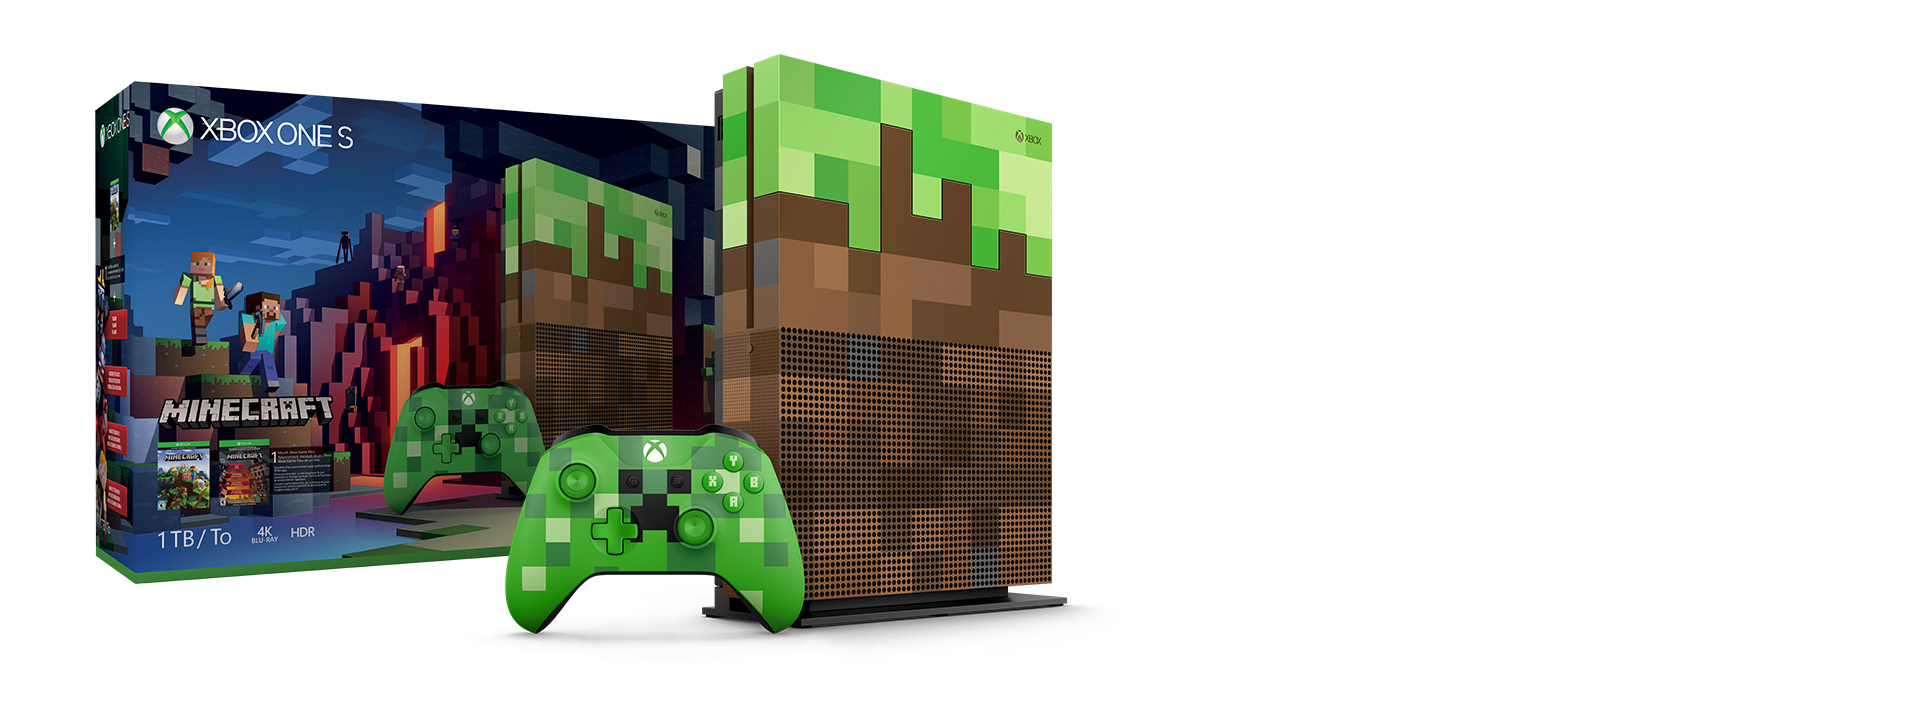 Xbox One S Minecraft Limited Edition (1TB)